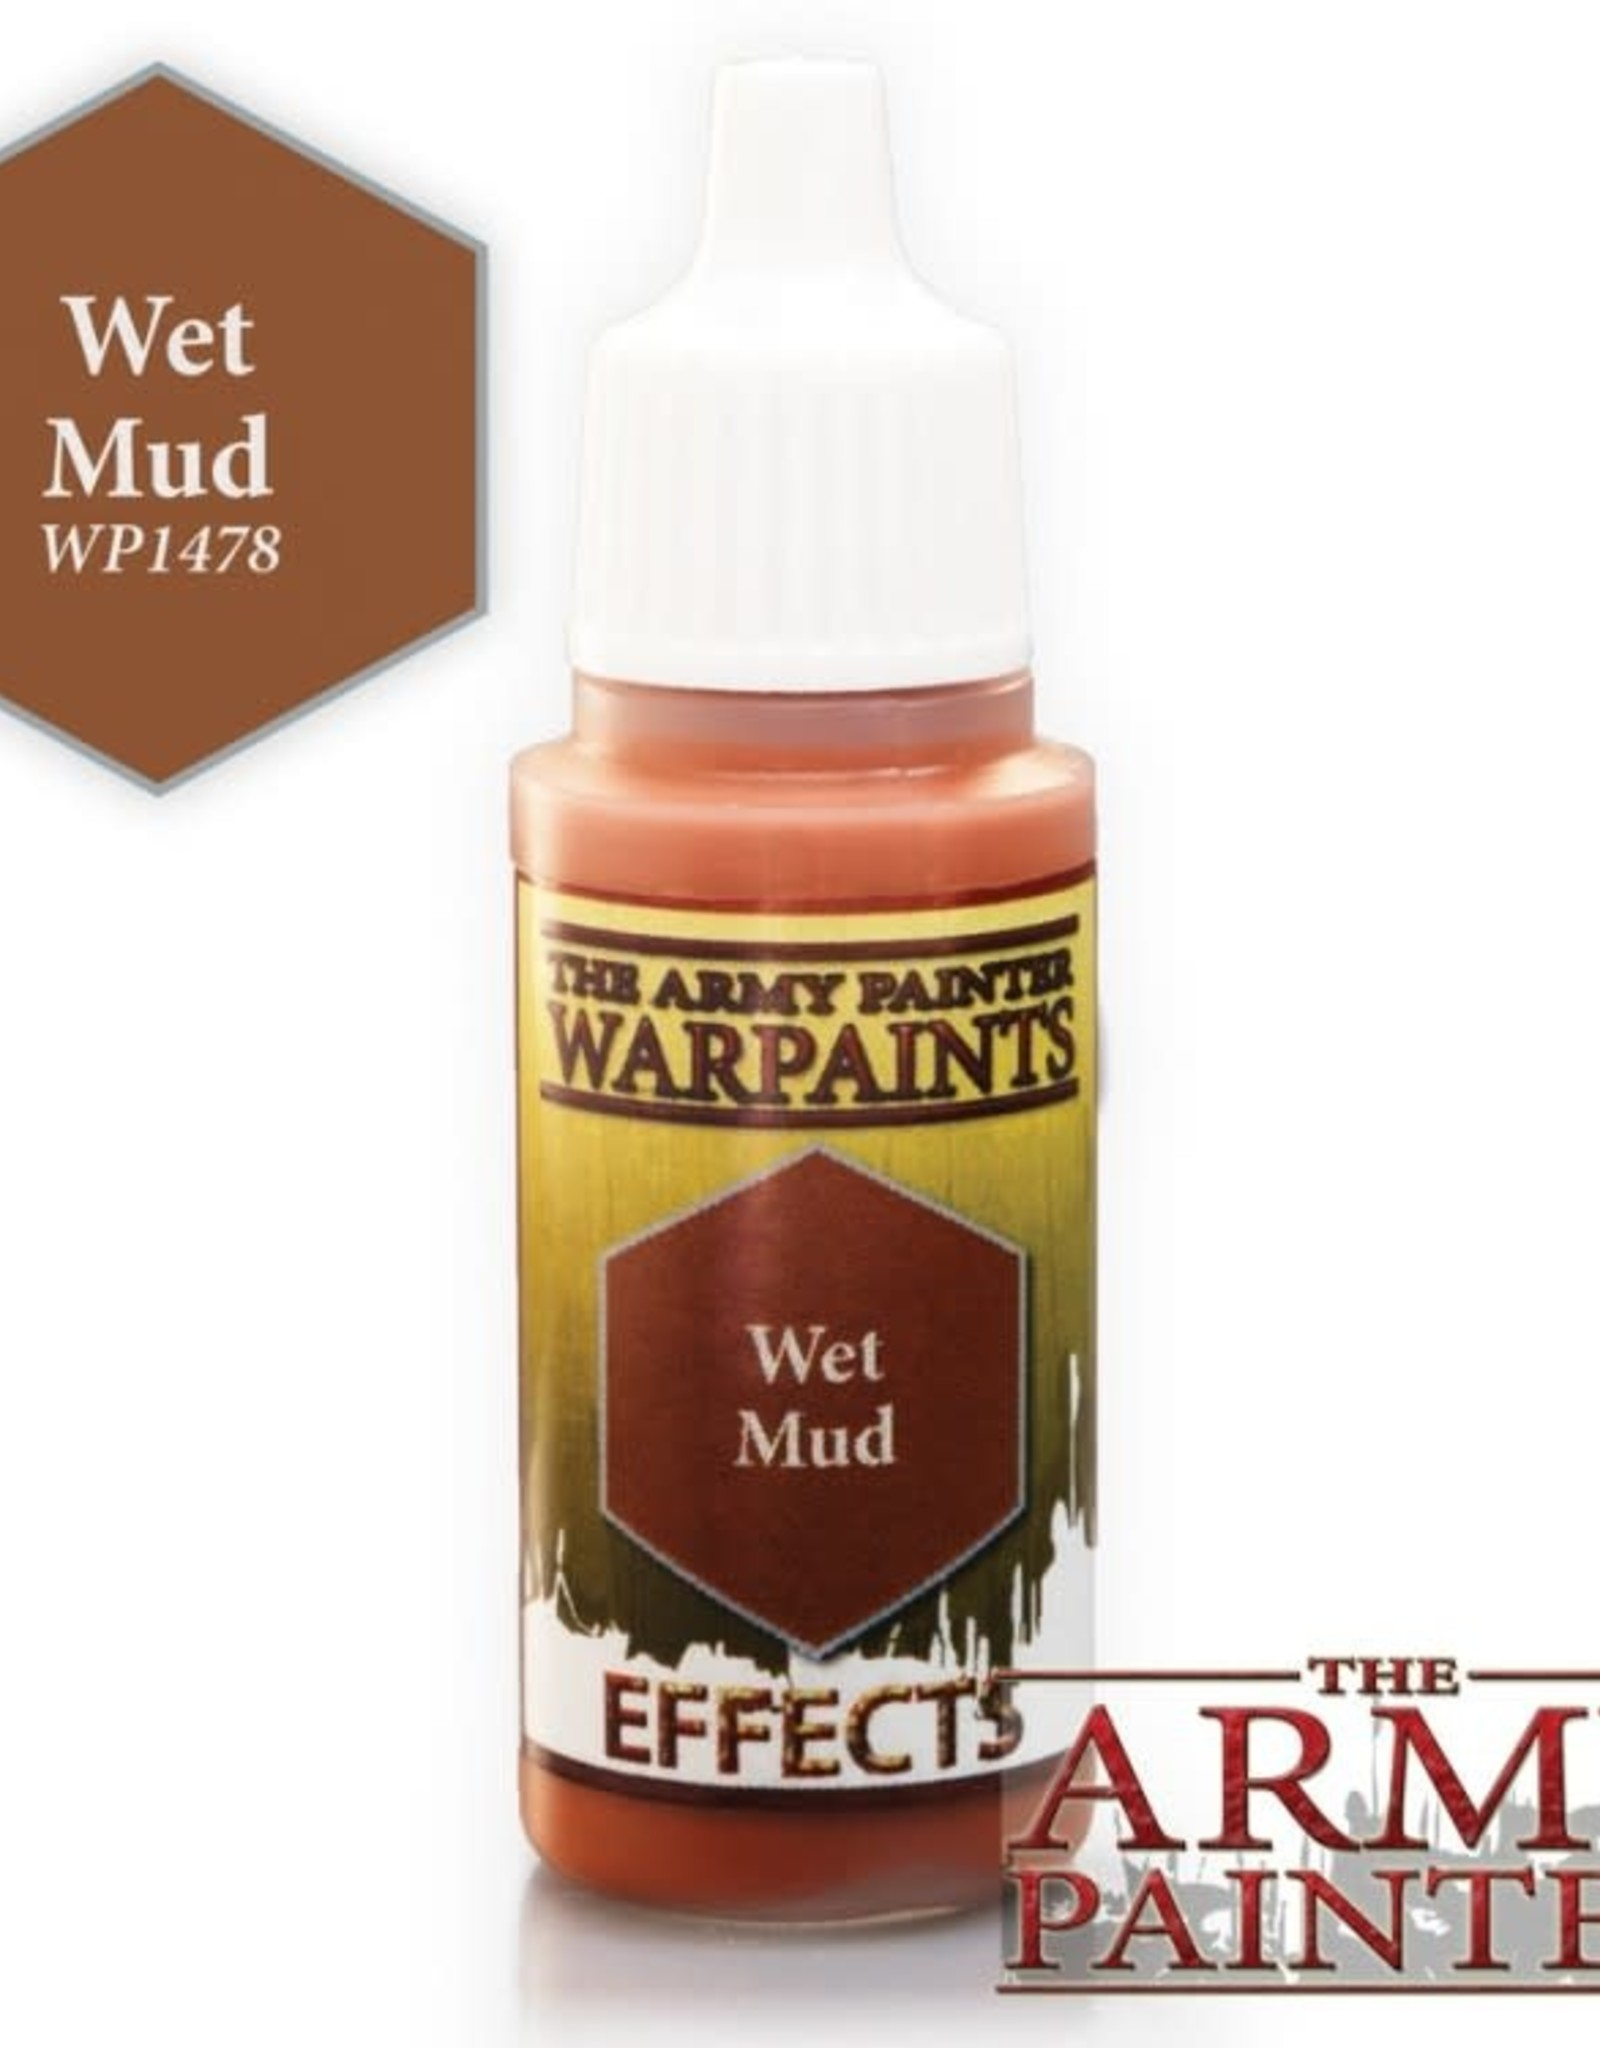 The Army Painter Warpaints - Wet Mud